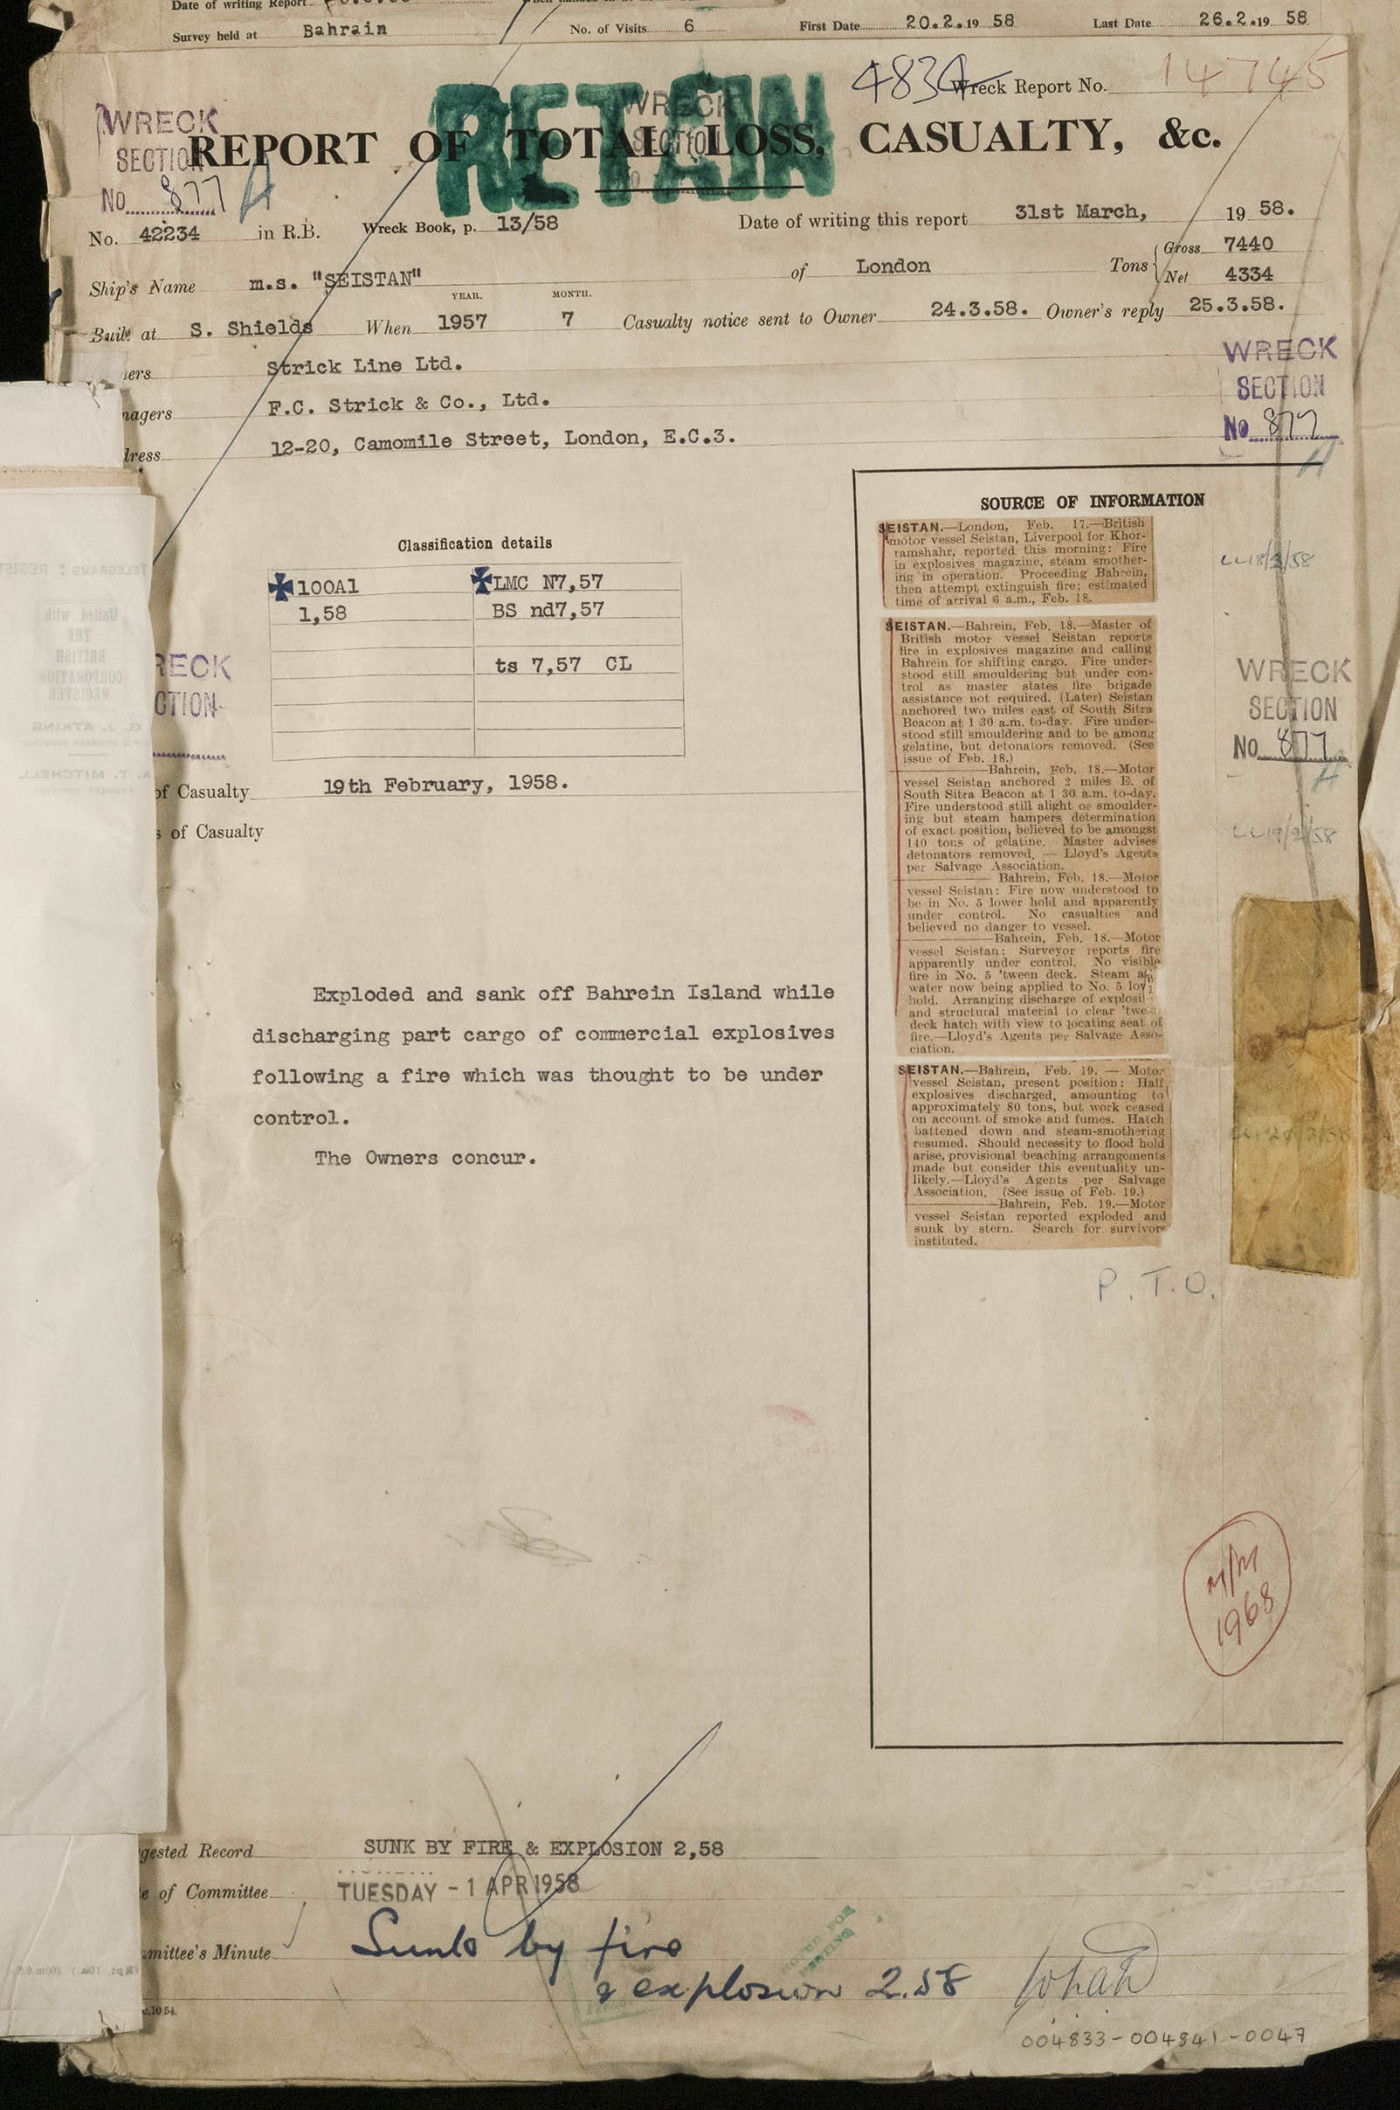 Report of Total Loss and Casualty for Seistan, 31st March 1958